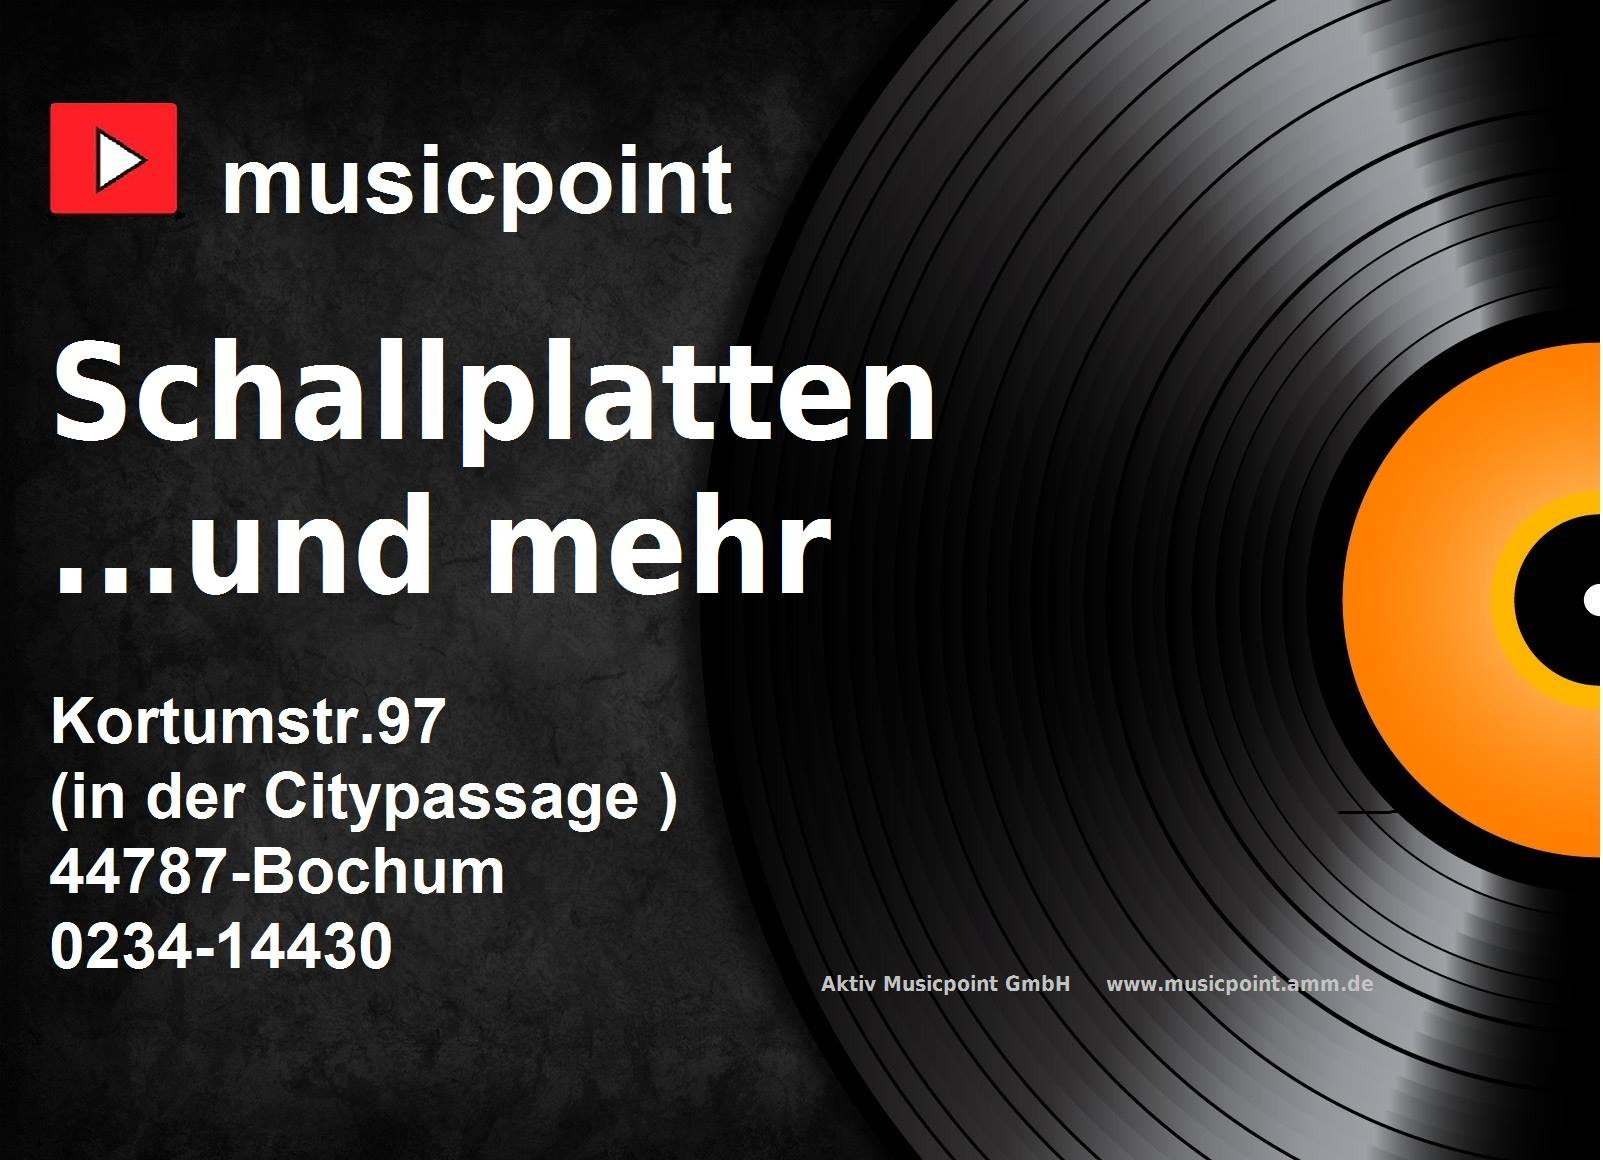 musicpoint